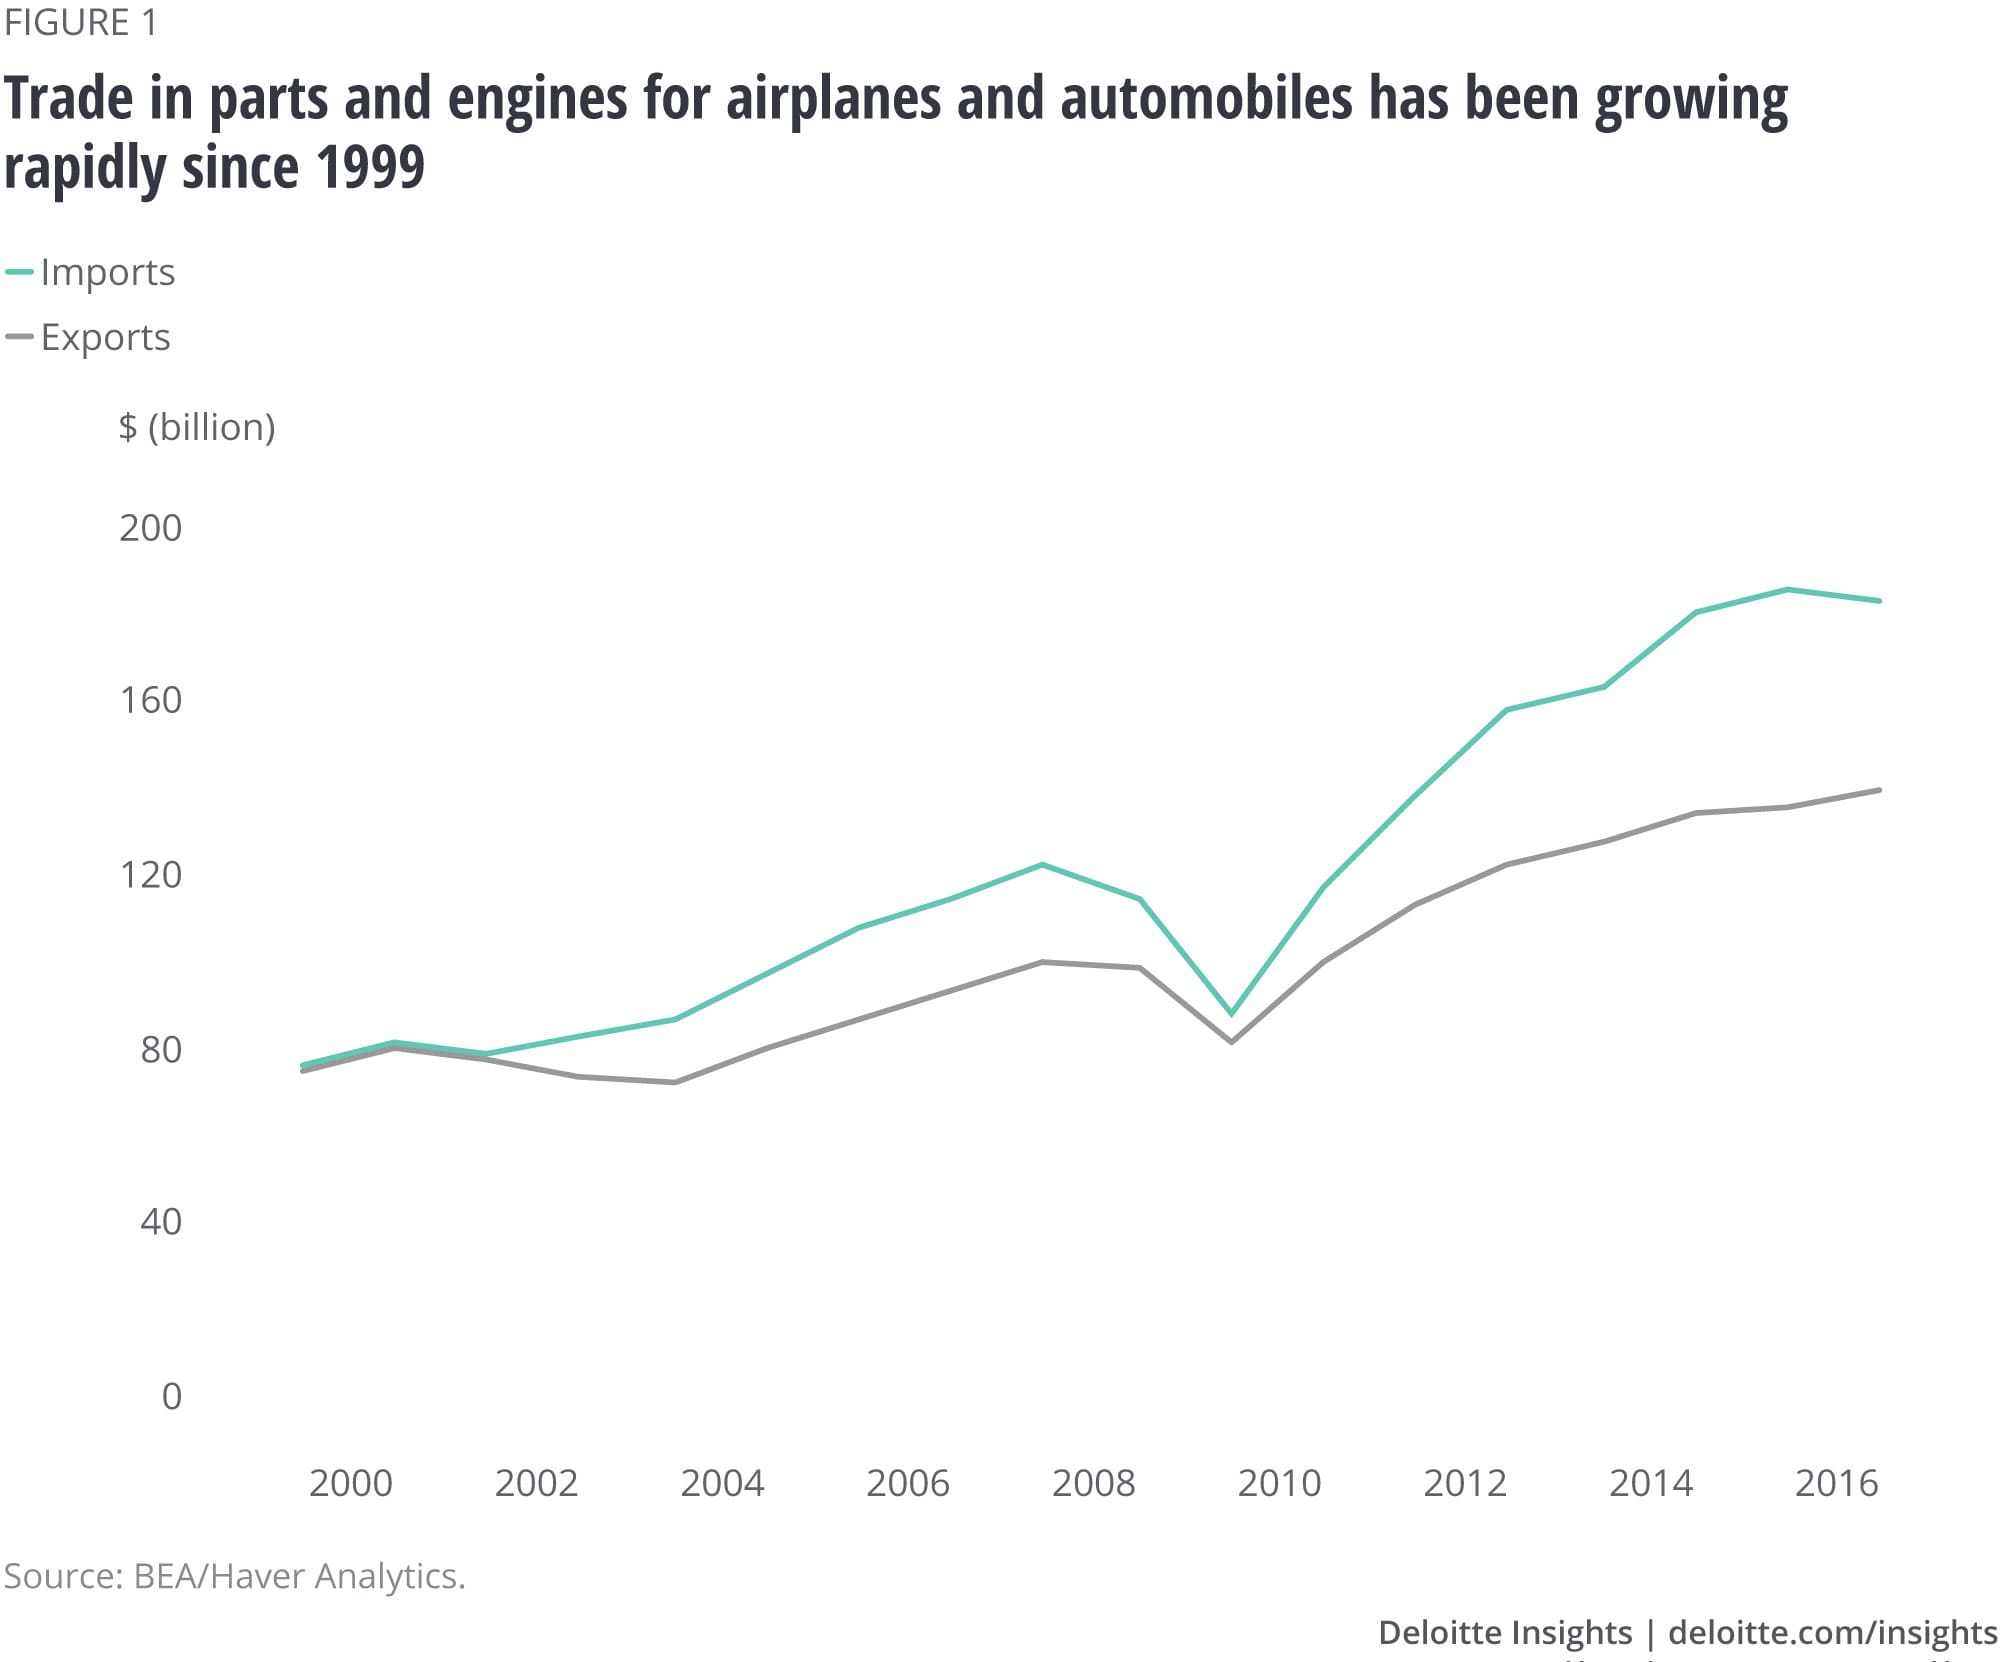 Trade in parts and engines for airplanes and automobiles has been growing rapidly since 1999